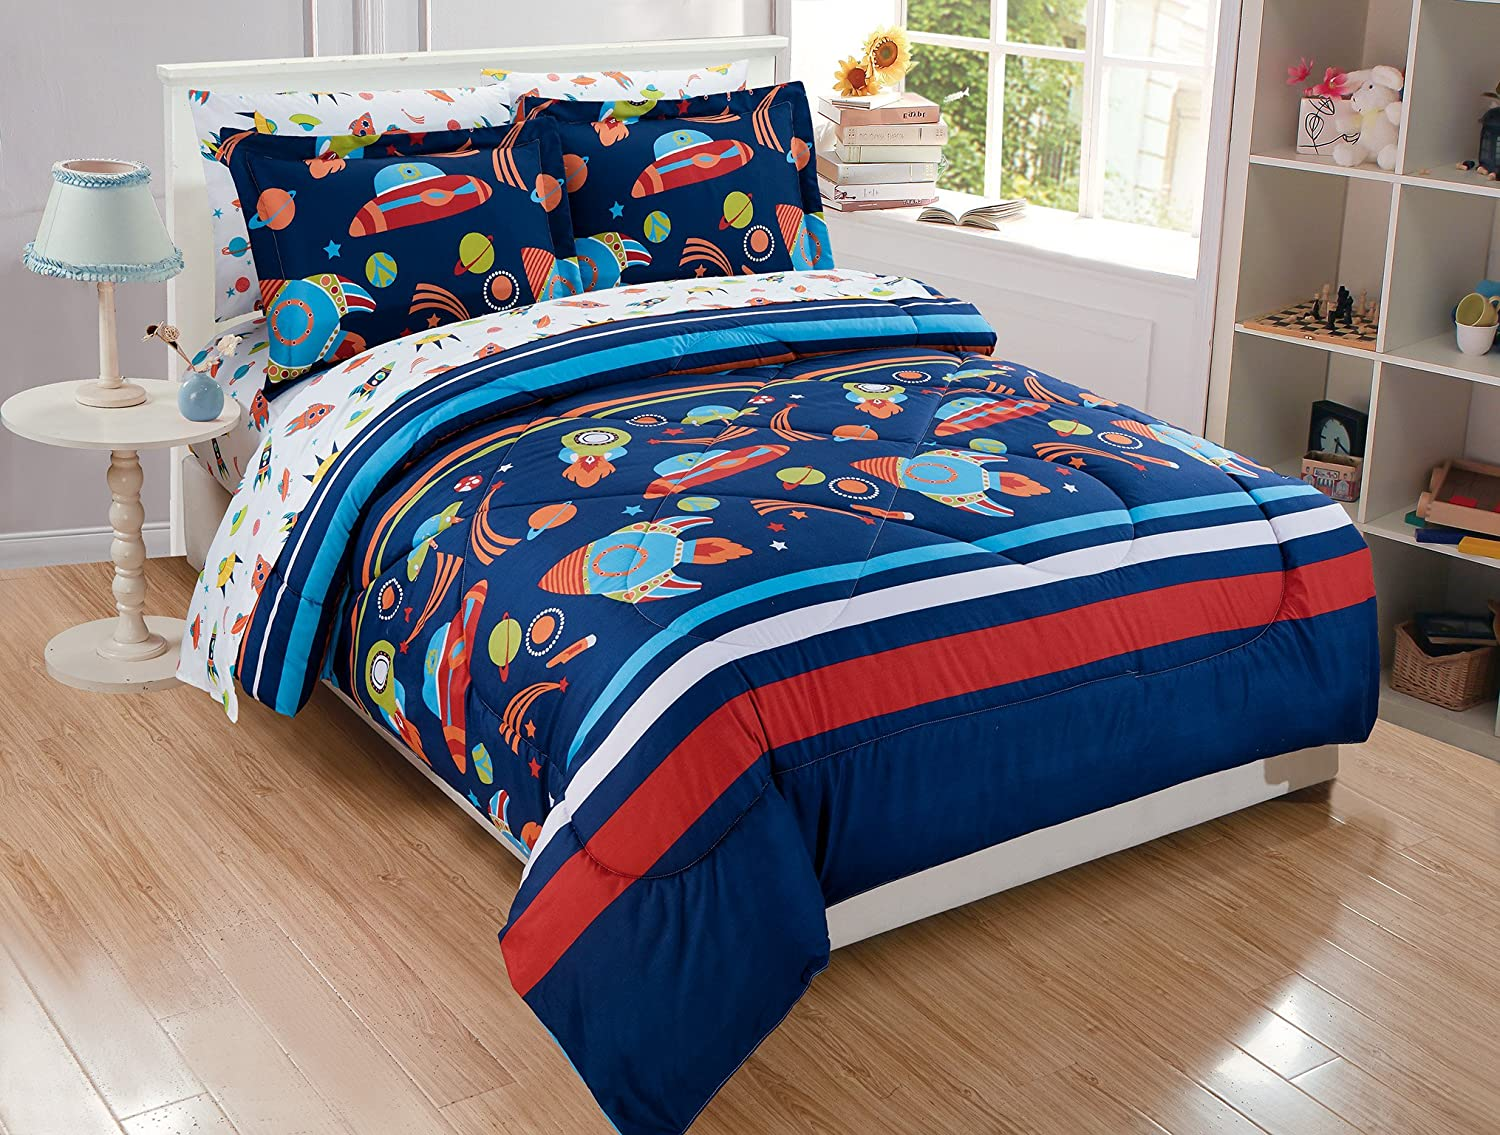 Fancy Linen 5pc Twin Comforter Set With Matching Sheets Solar System Universe Galaxy Stars Rocket Spaceship Navy Blue Orange White Red New